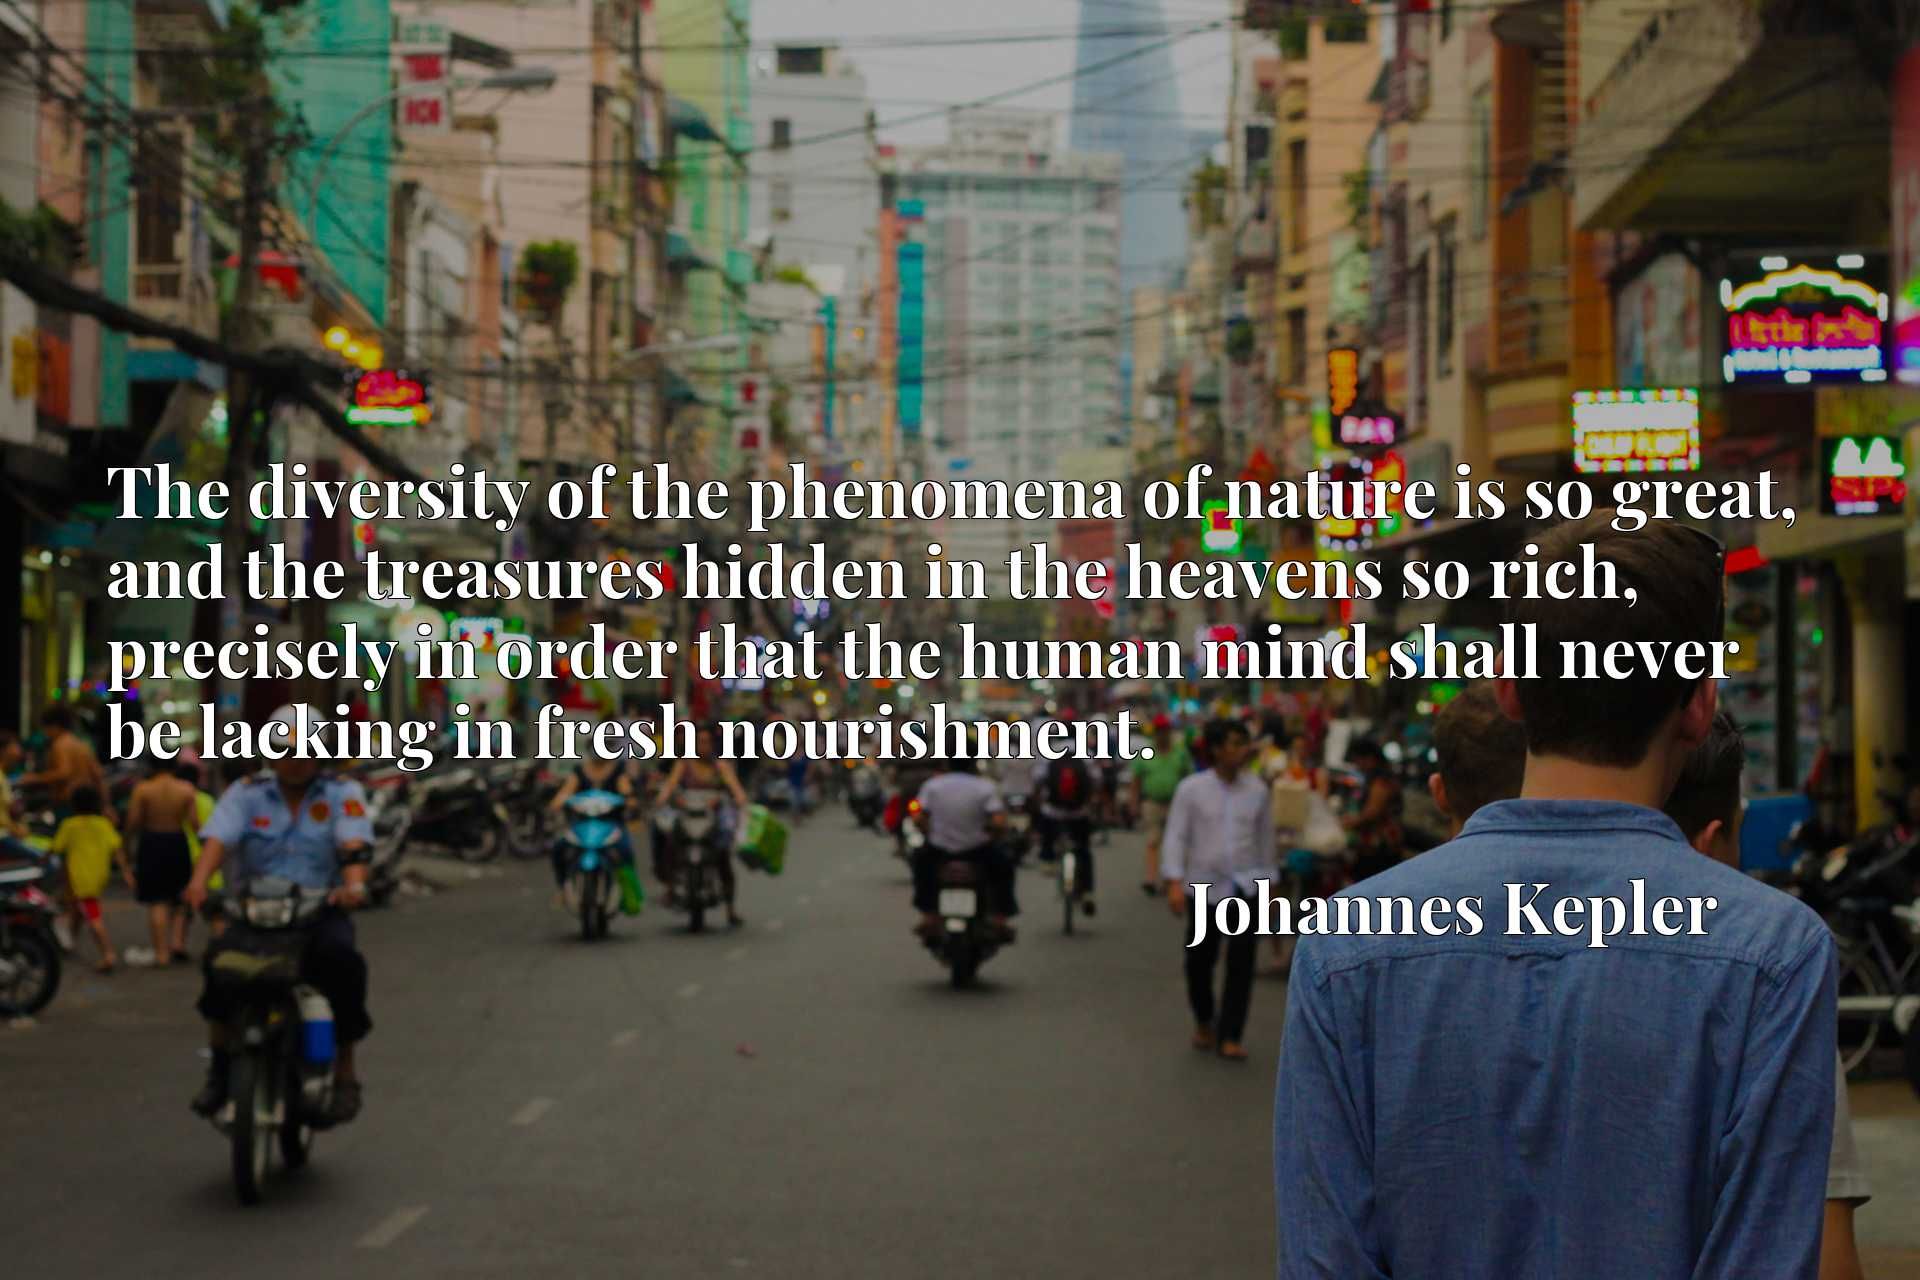 Quote Picture :The diversity of the phenomena of nature is so great, and the treasures hidden in the heavens so rich, precisely in order that the human mind shall never be lacking in fresh nourishment.